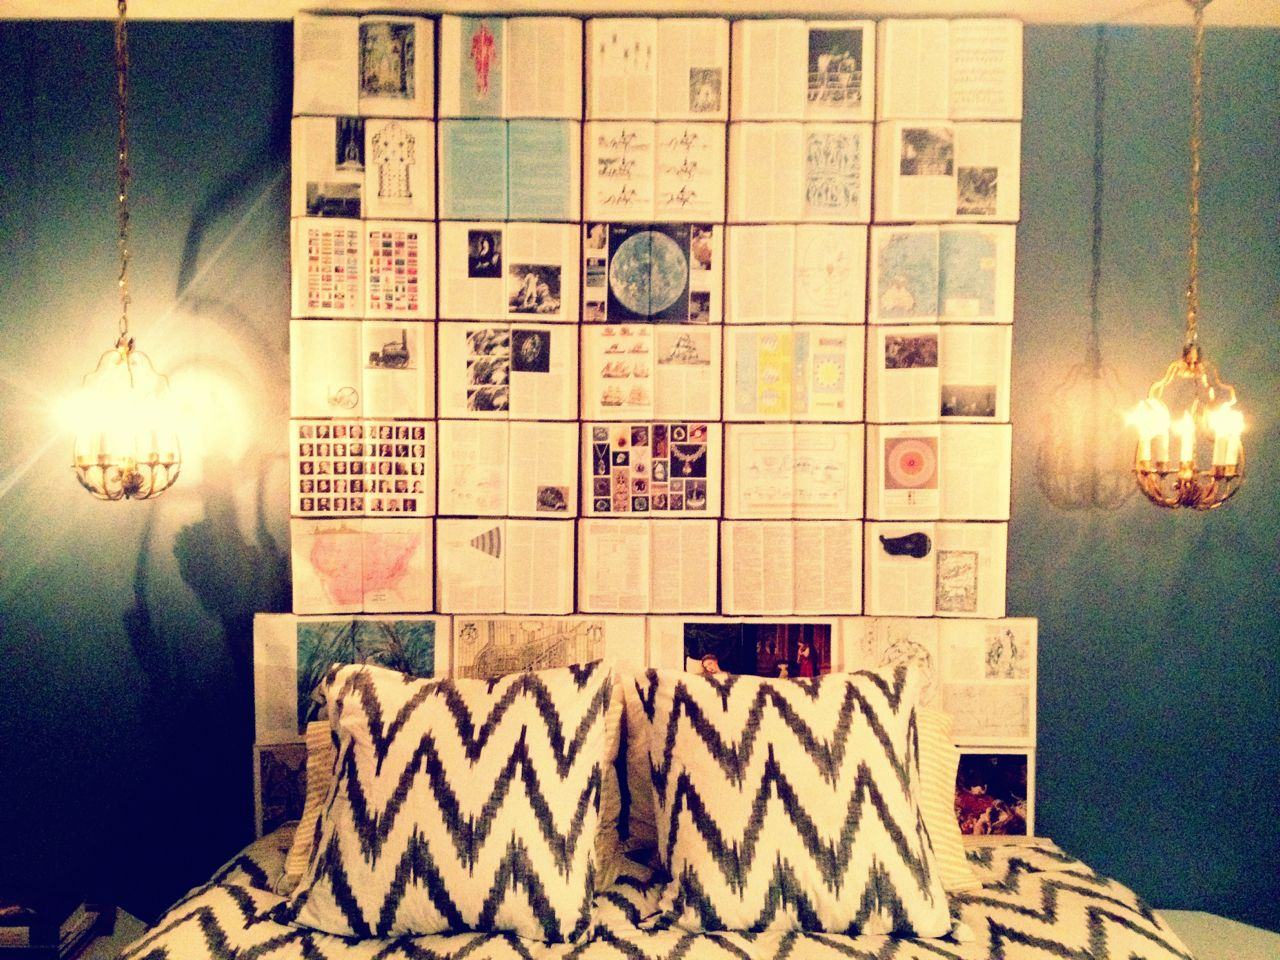 10 Creative Ways to Use Old Books - | Repurposing, Wall decorations ...